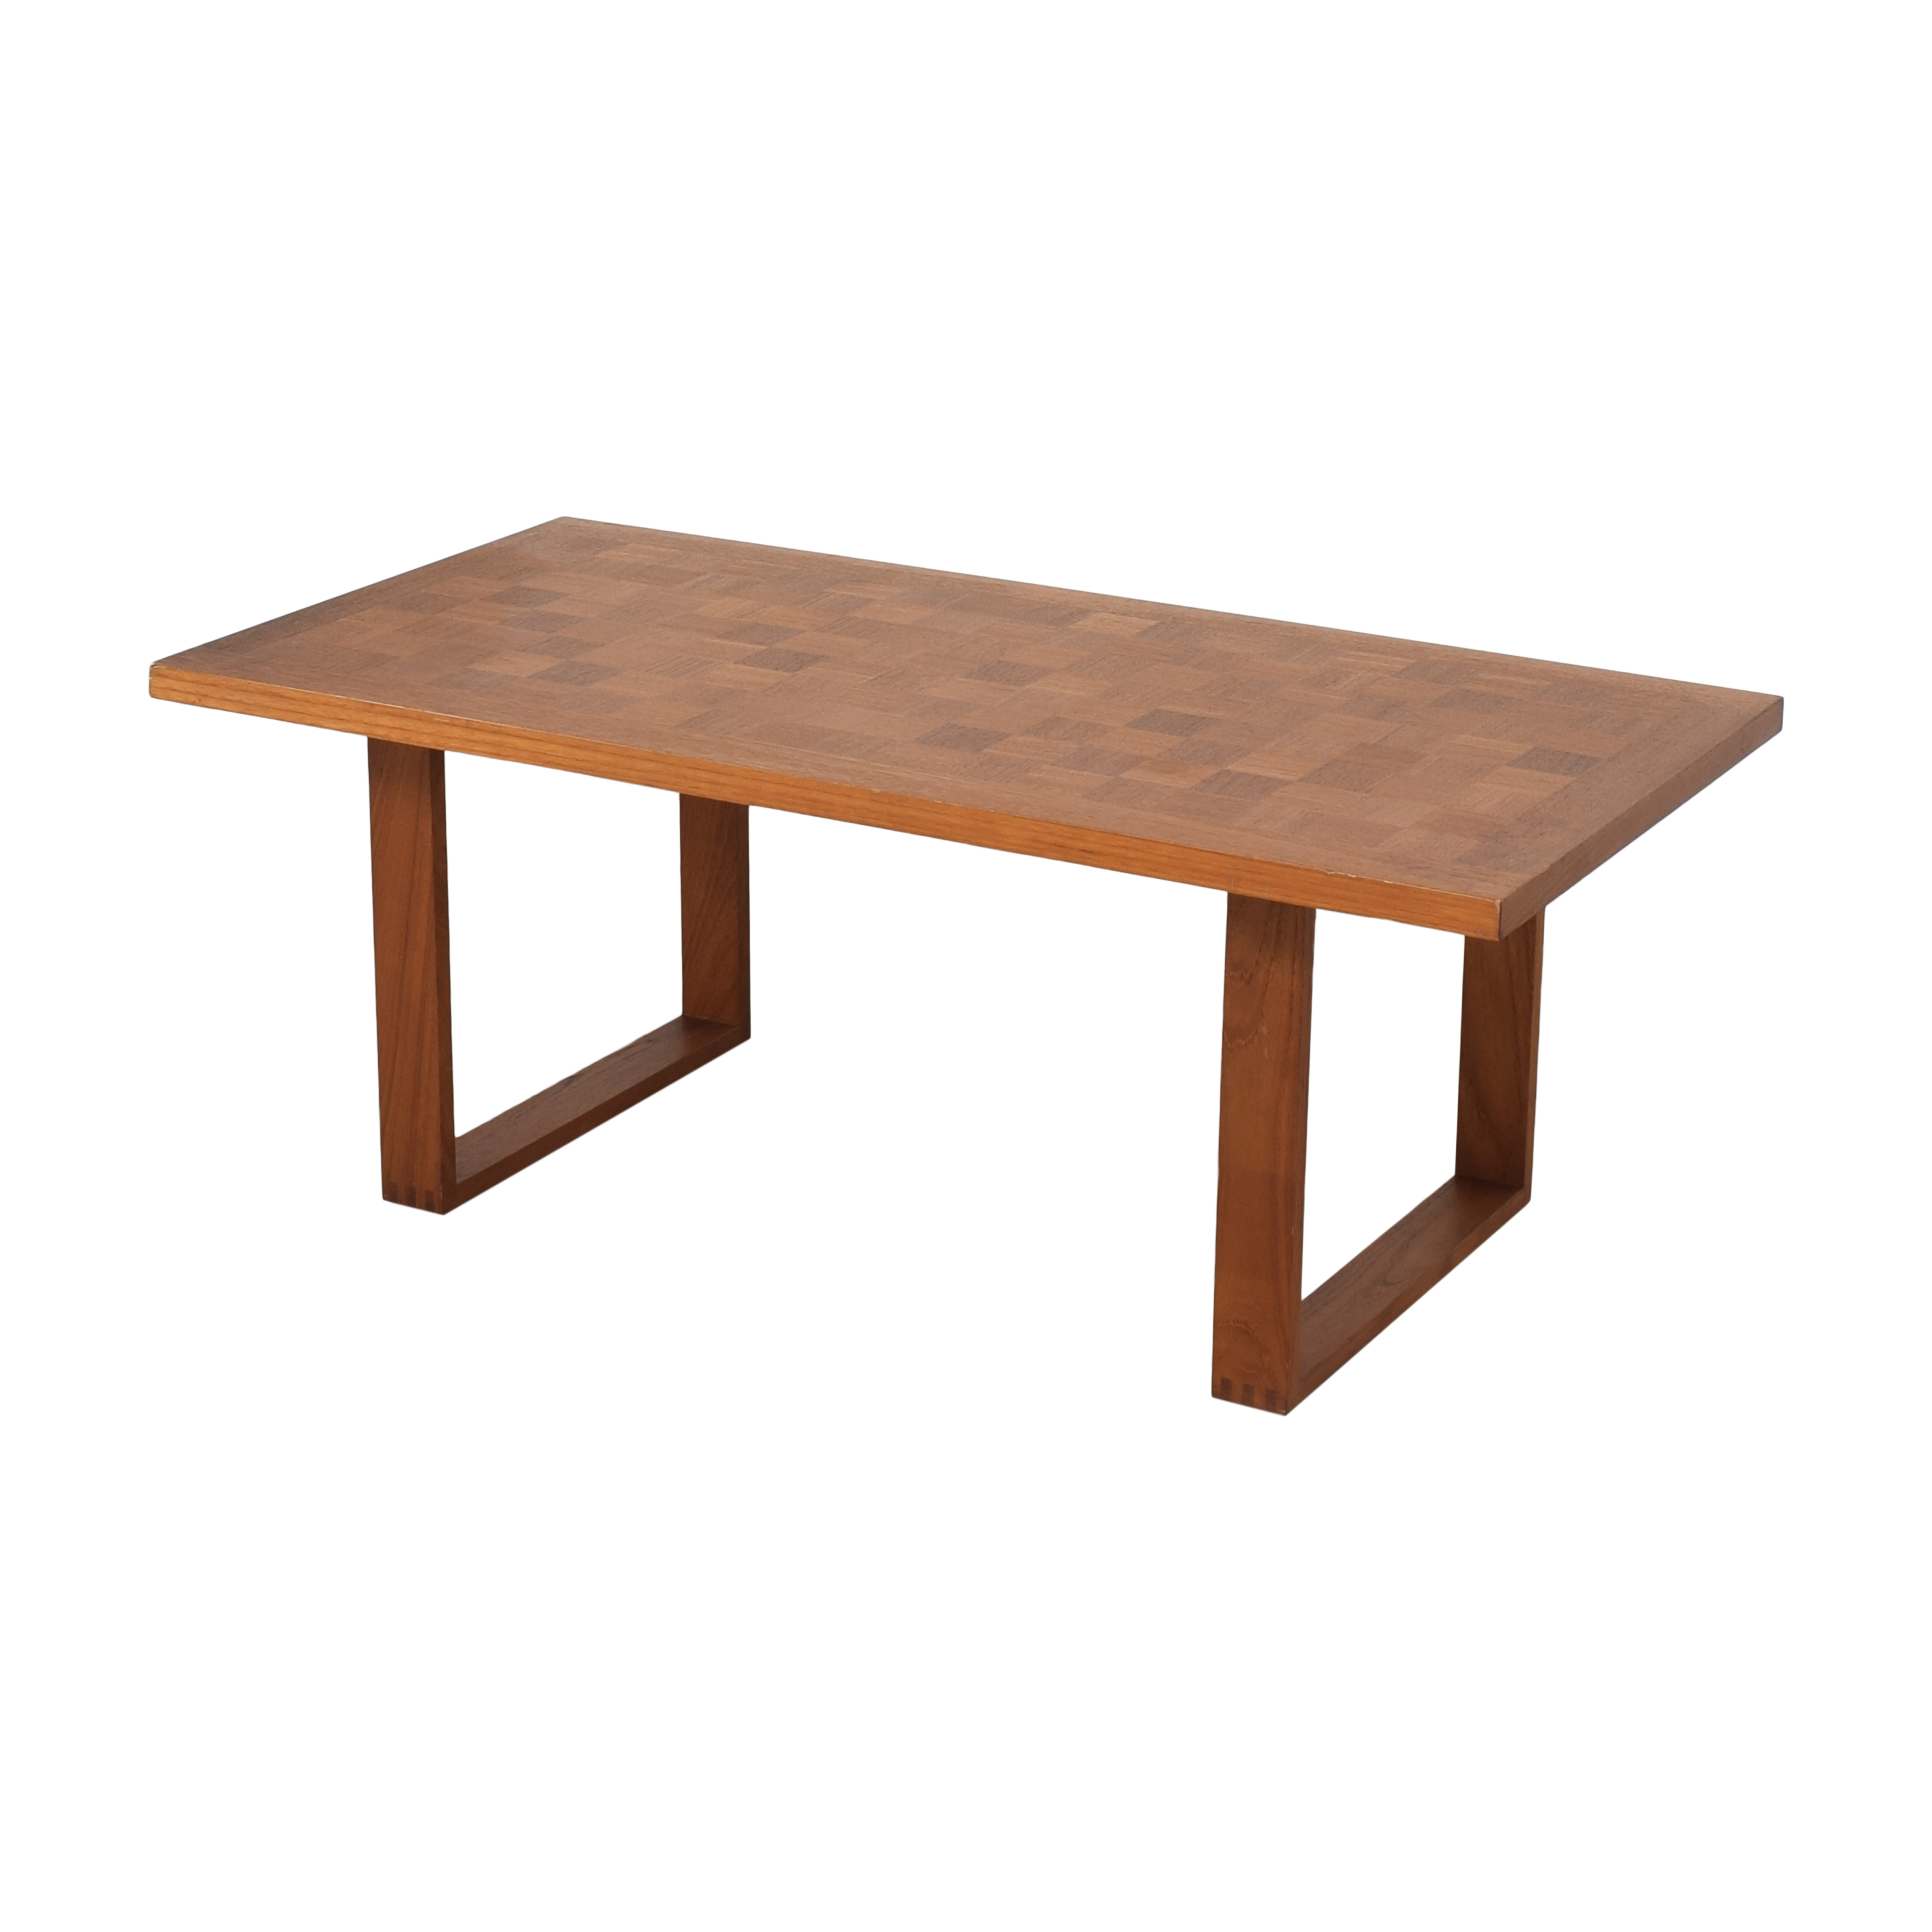 France and Son France and Son Checkerboard Coffee Table ct